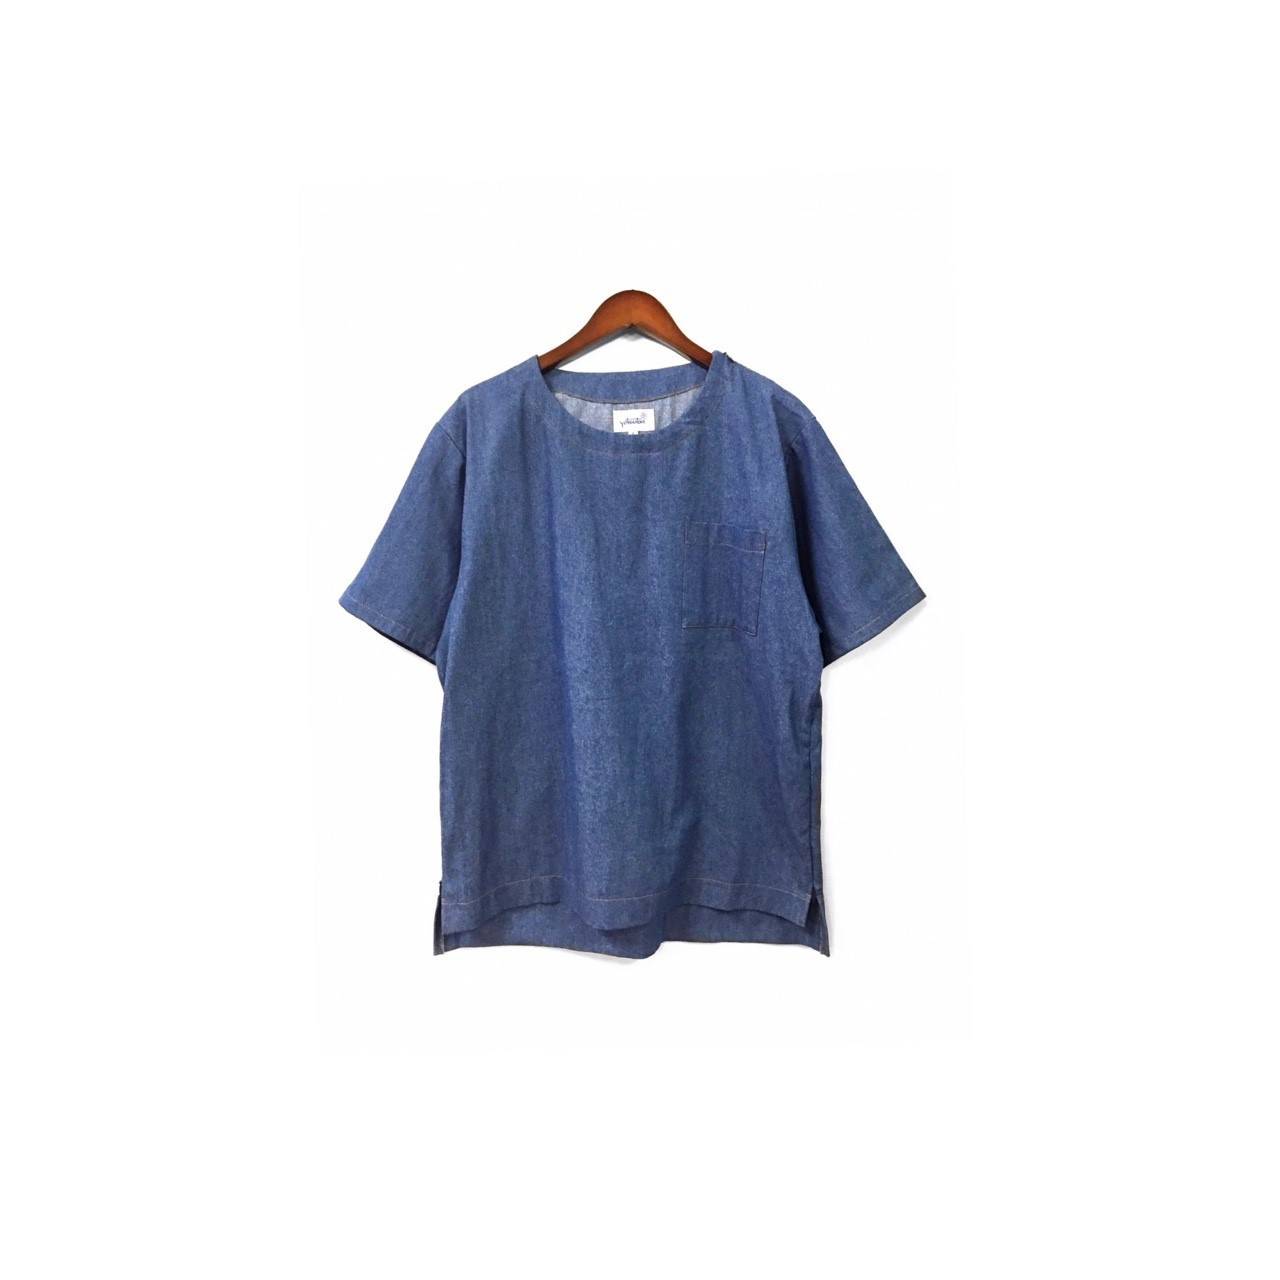 yotsuba - Shortsleeve Denim Tops / Wash ¥12000+tax